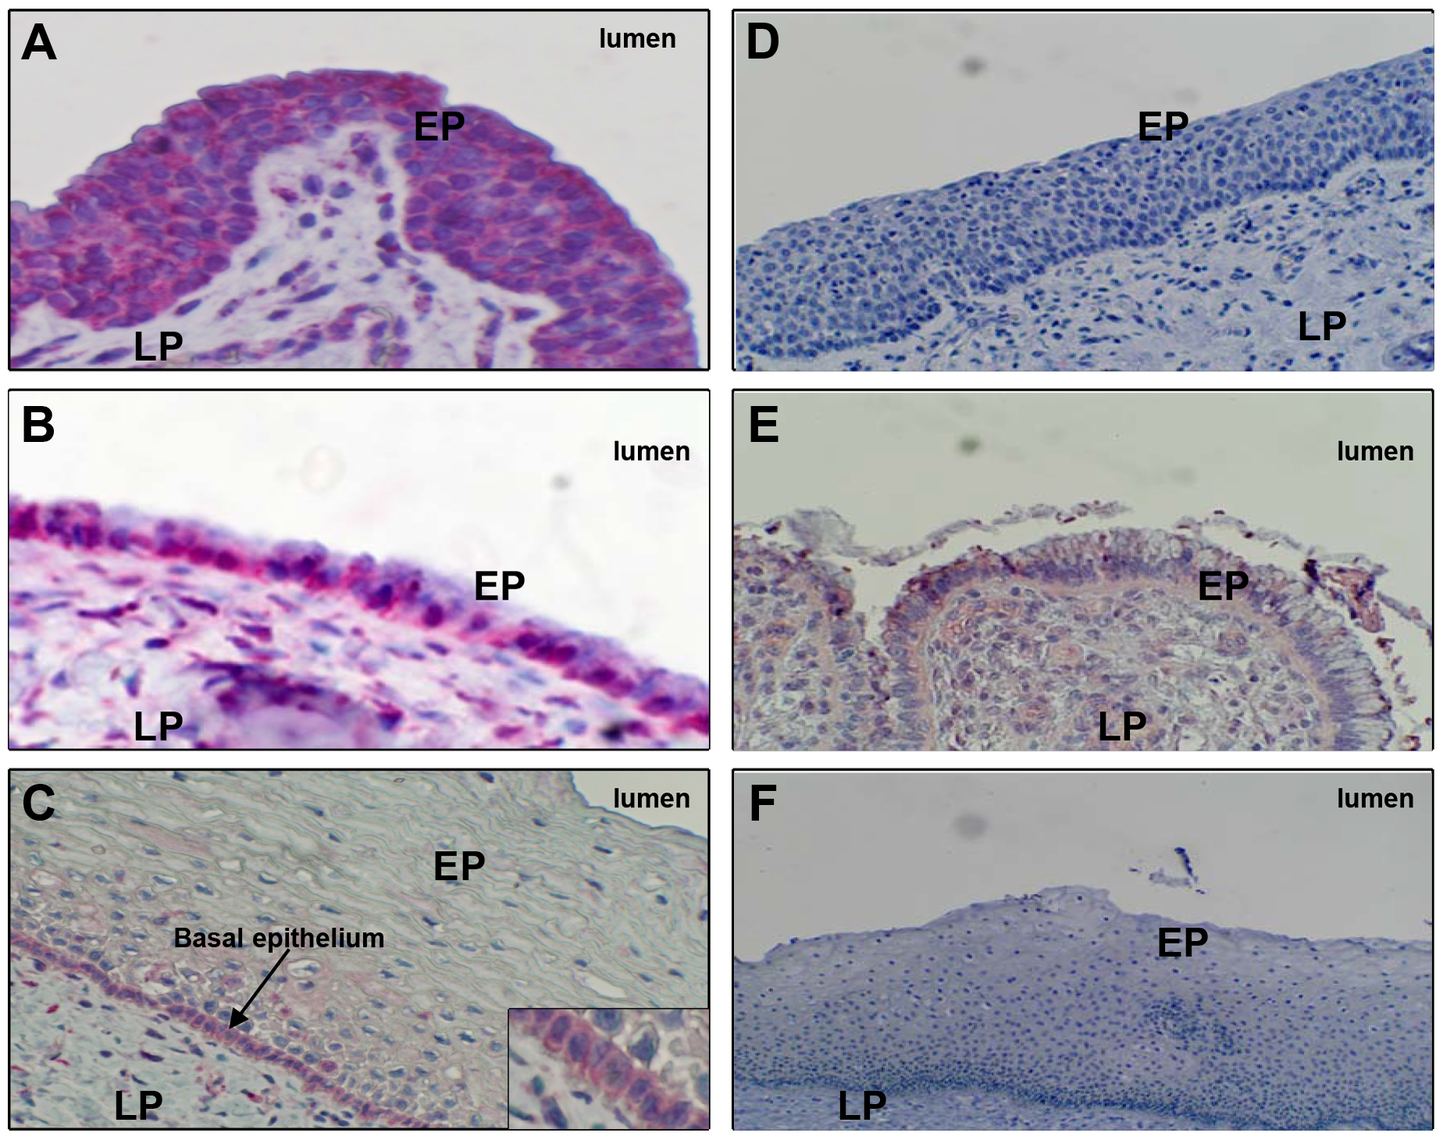 FcRn expression in human genital tissues, detected by immunohistochemistry.